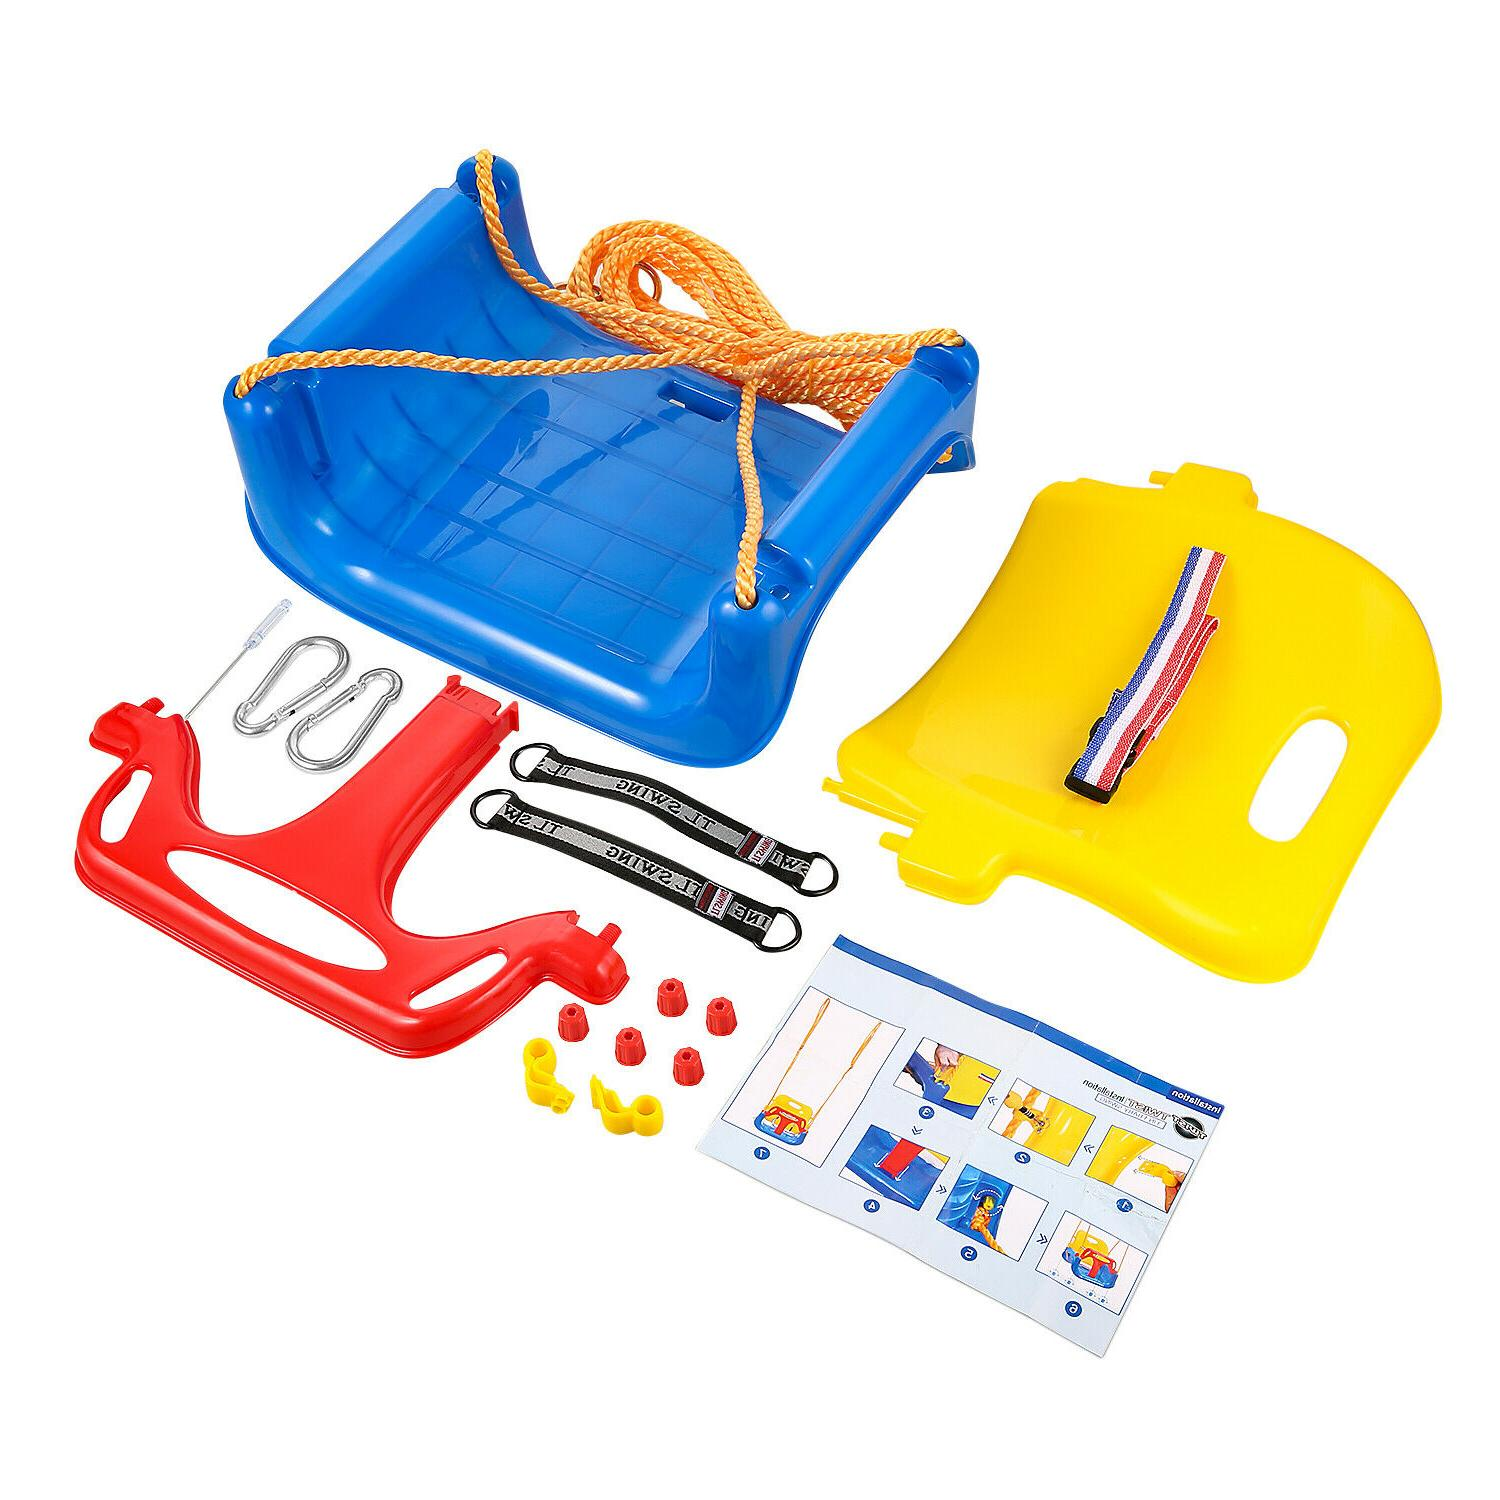 3-in-1 for Playground Fun